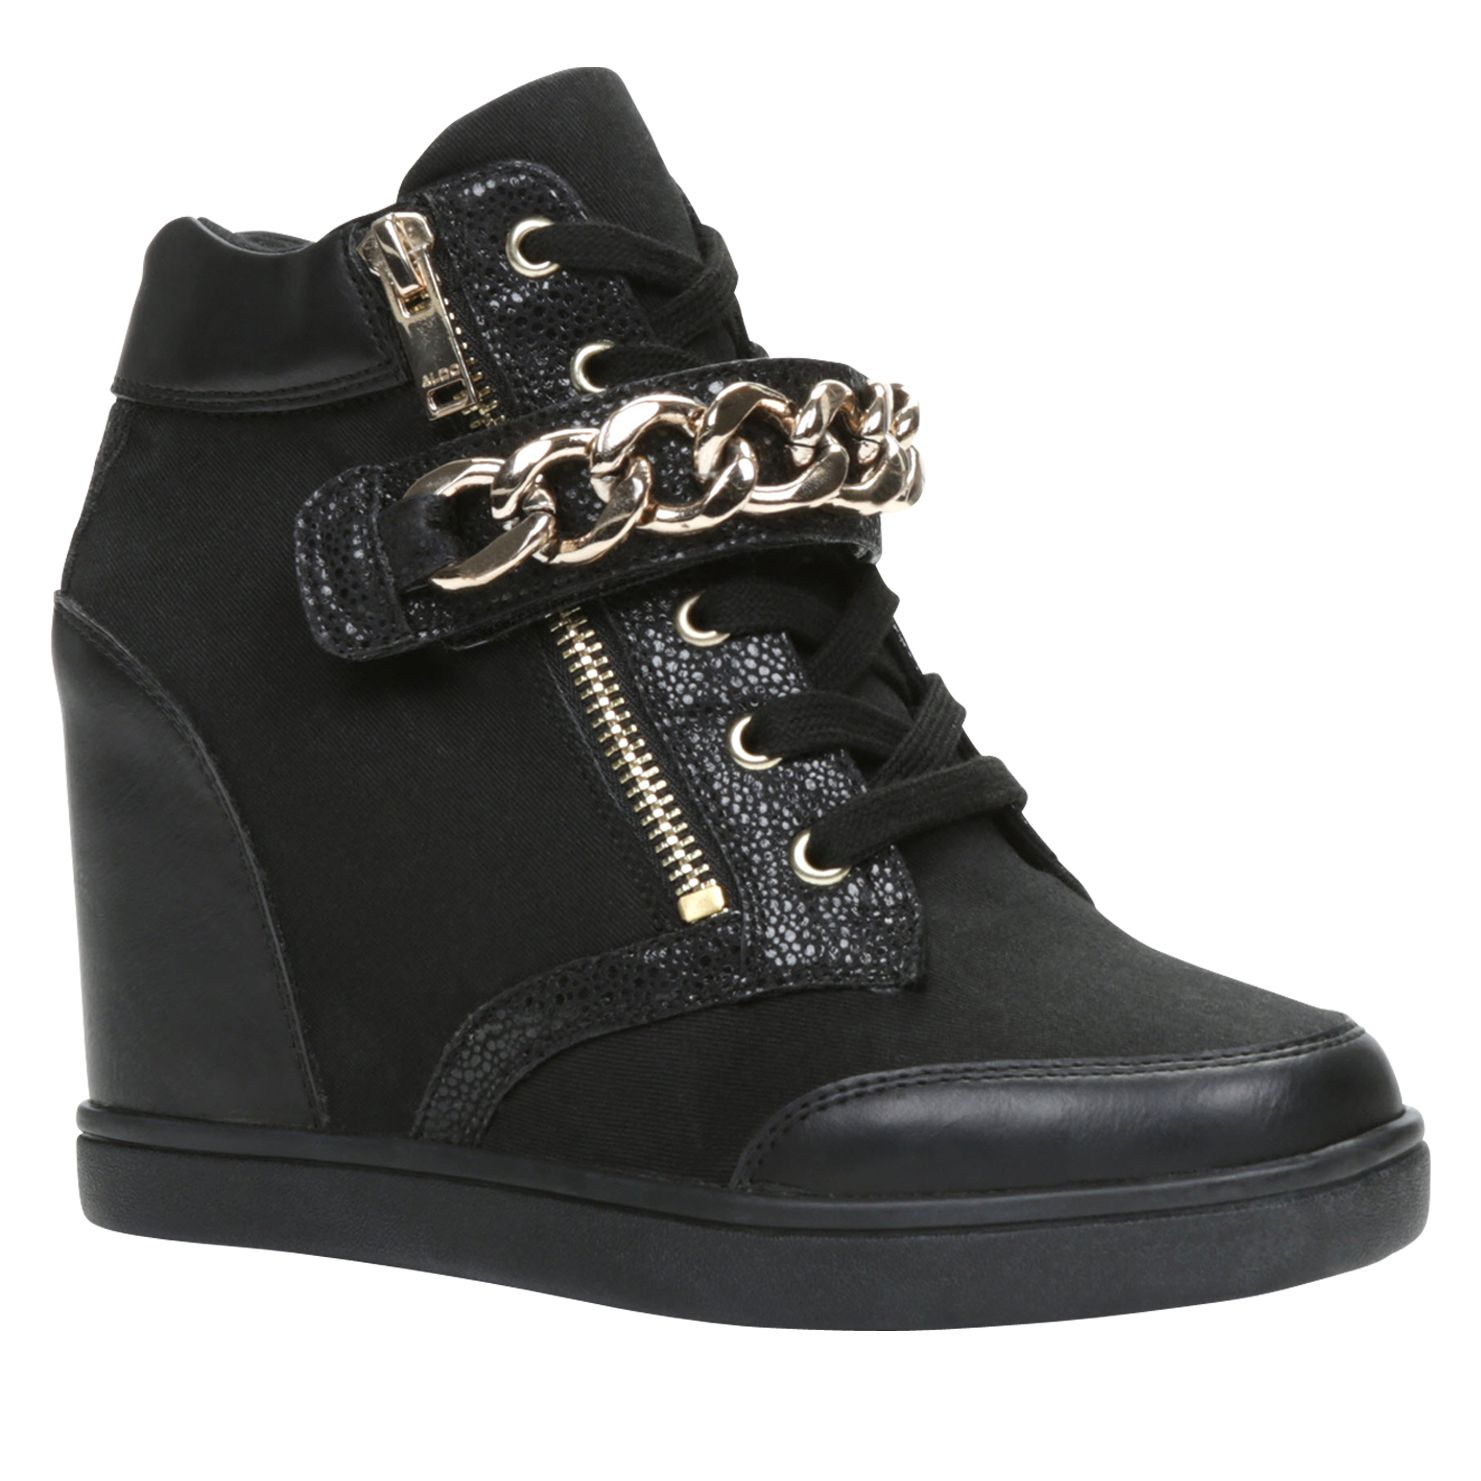 Eroerwen wedge trainer shoes